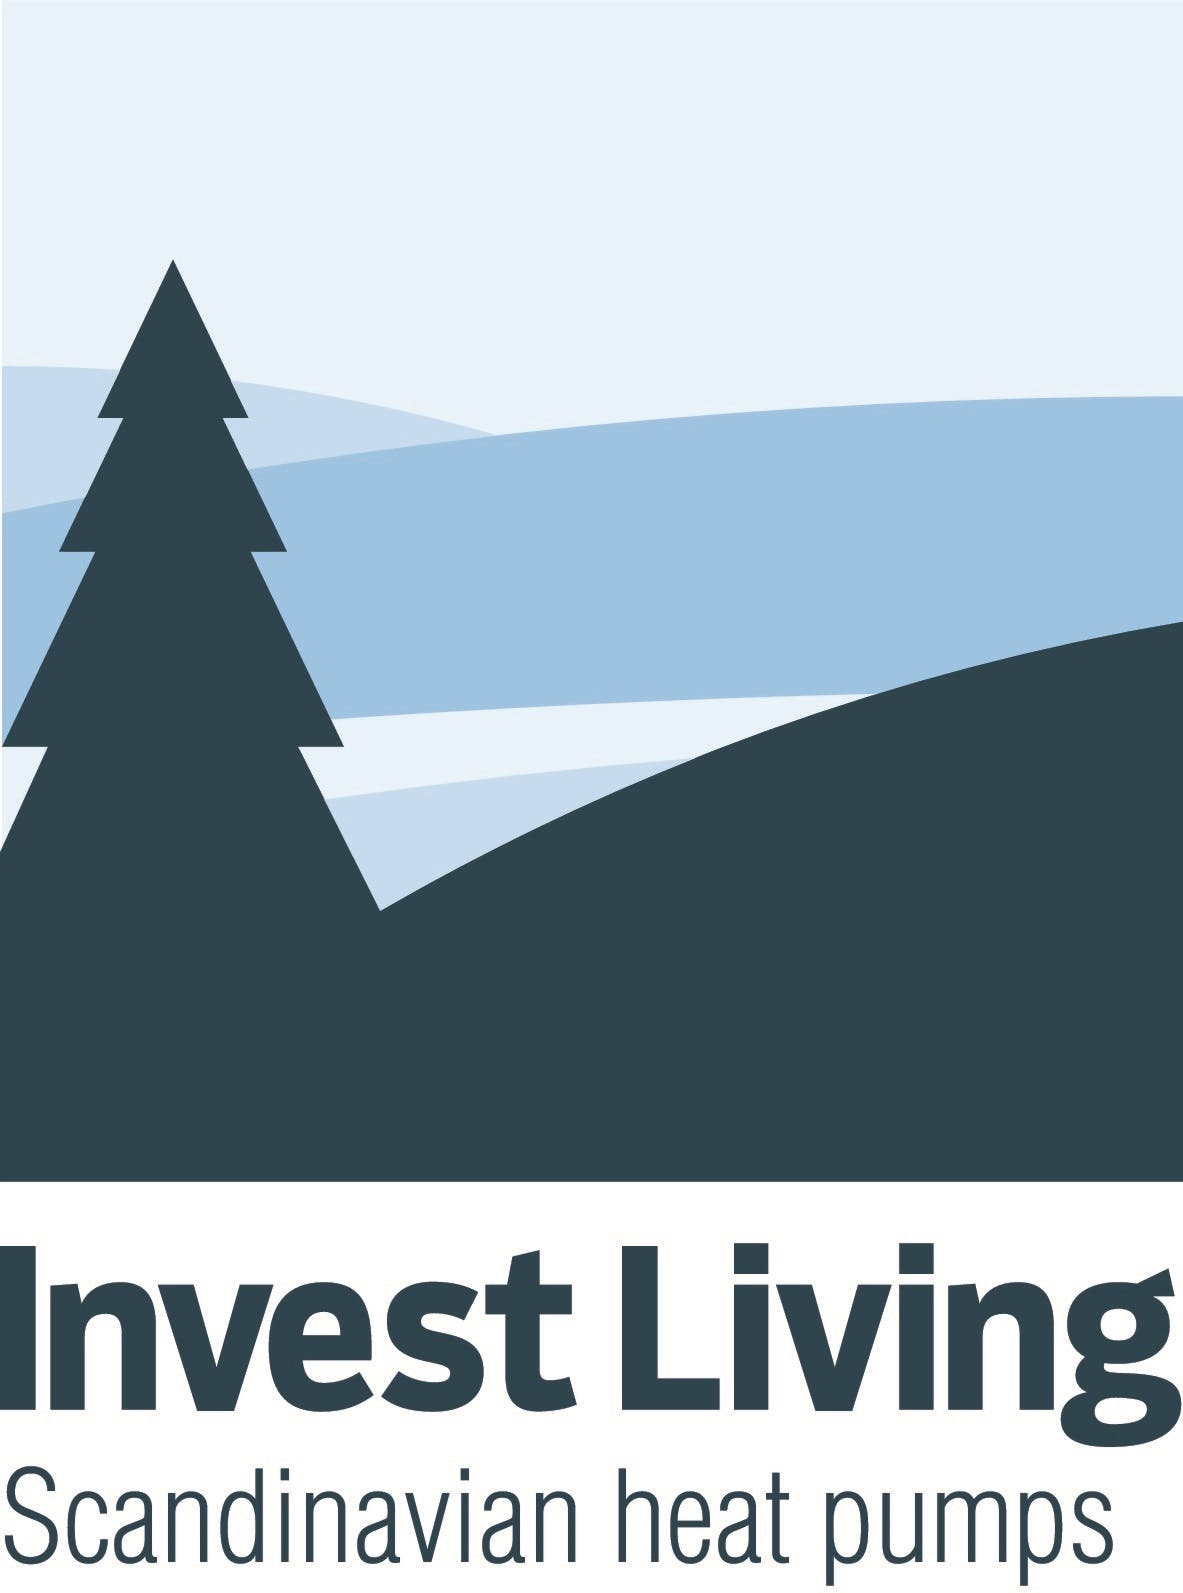 Invest Living